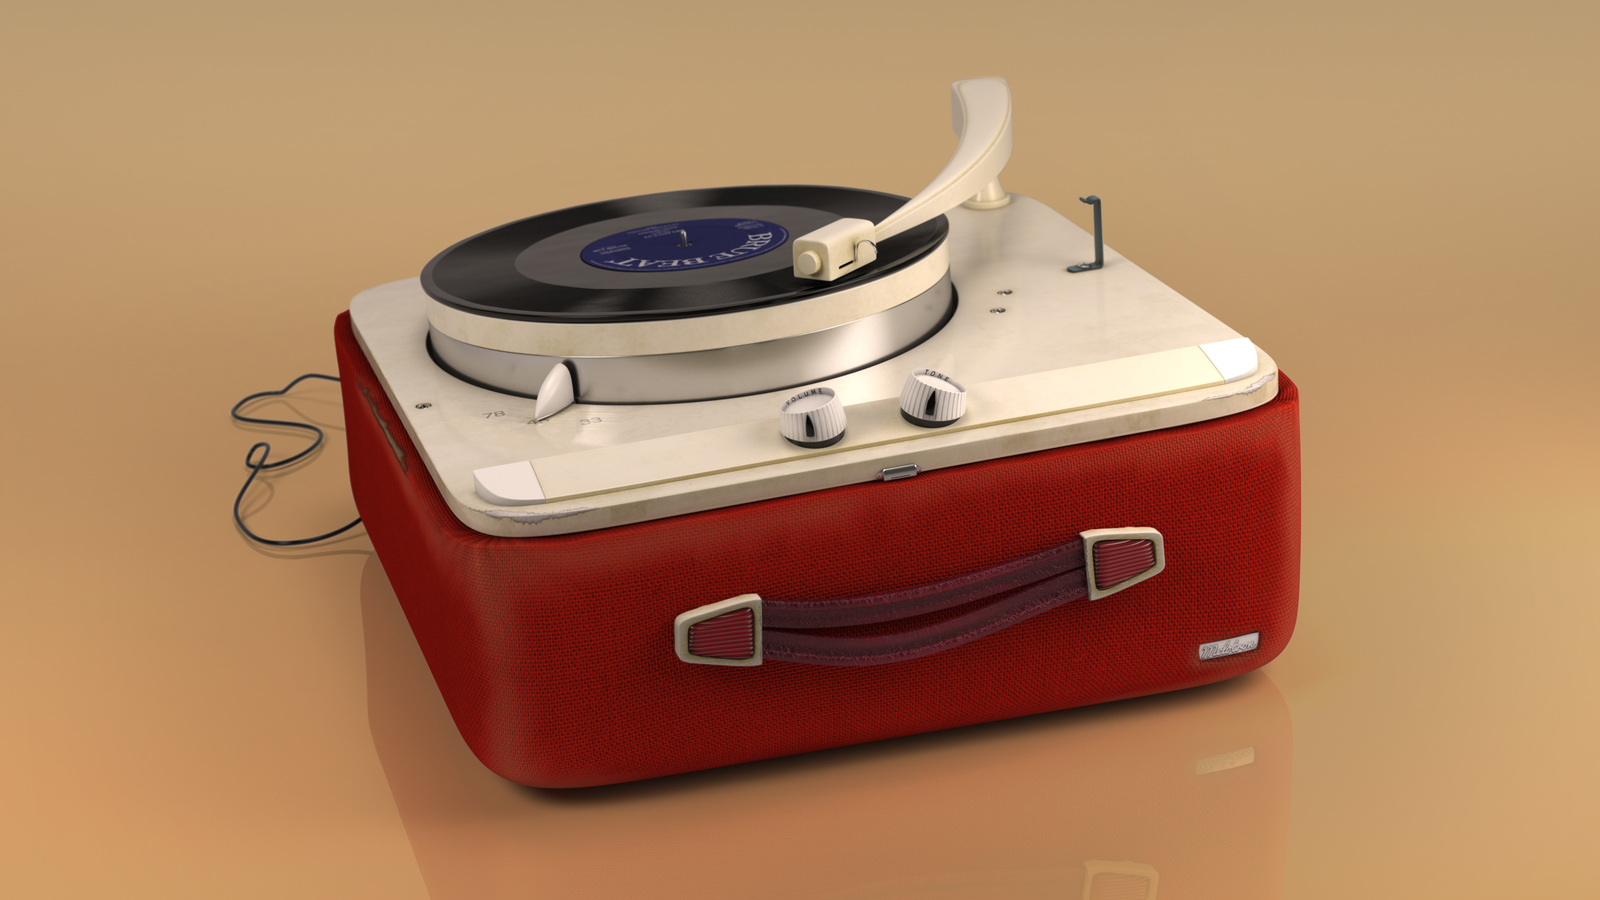 Hi-res still of record player for print campaign